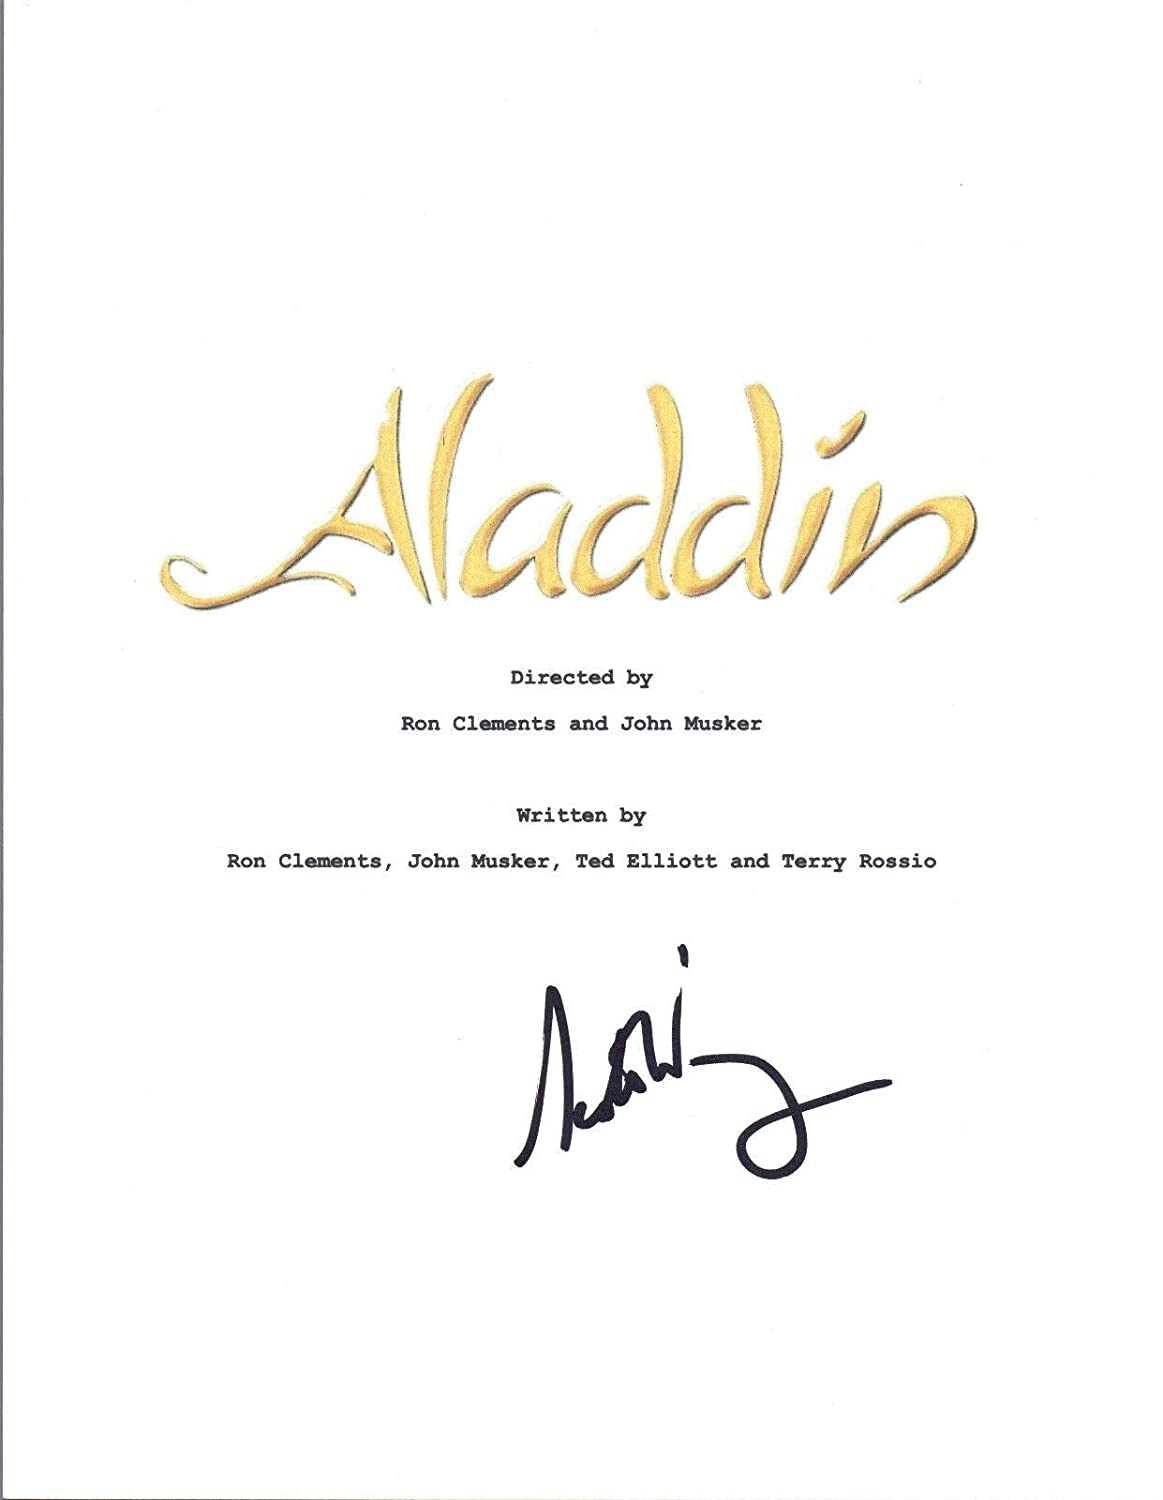 Scott Weinger Signed Autographed Disney's ALADDIN Movie Script COA Unbranded